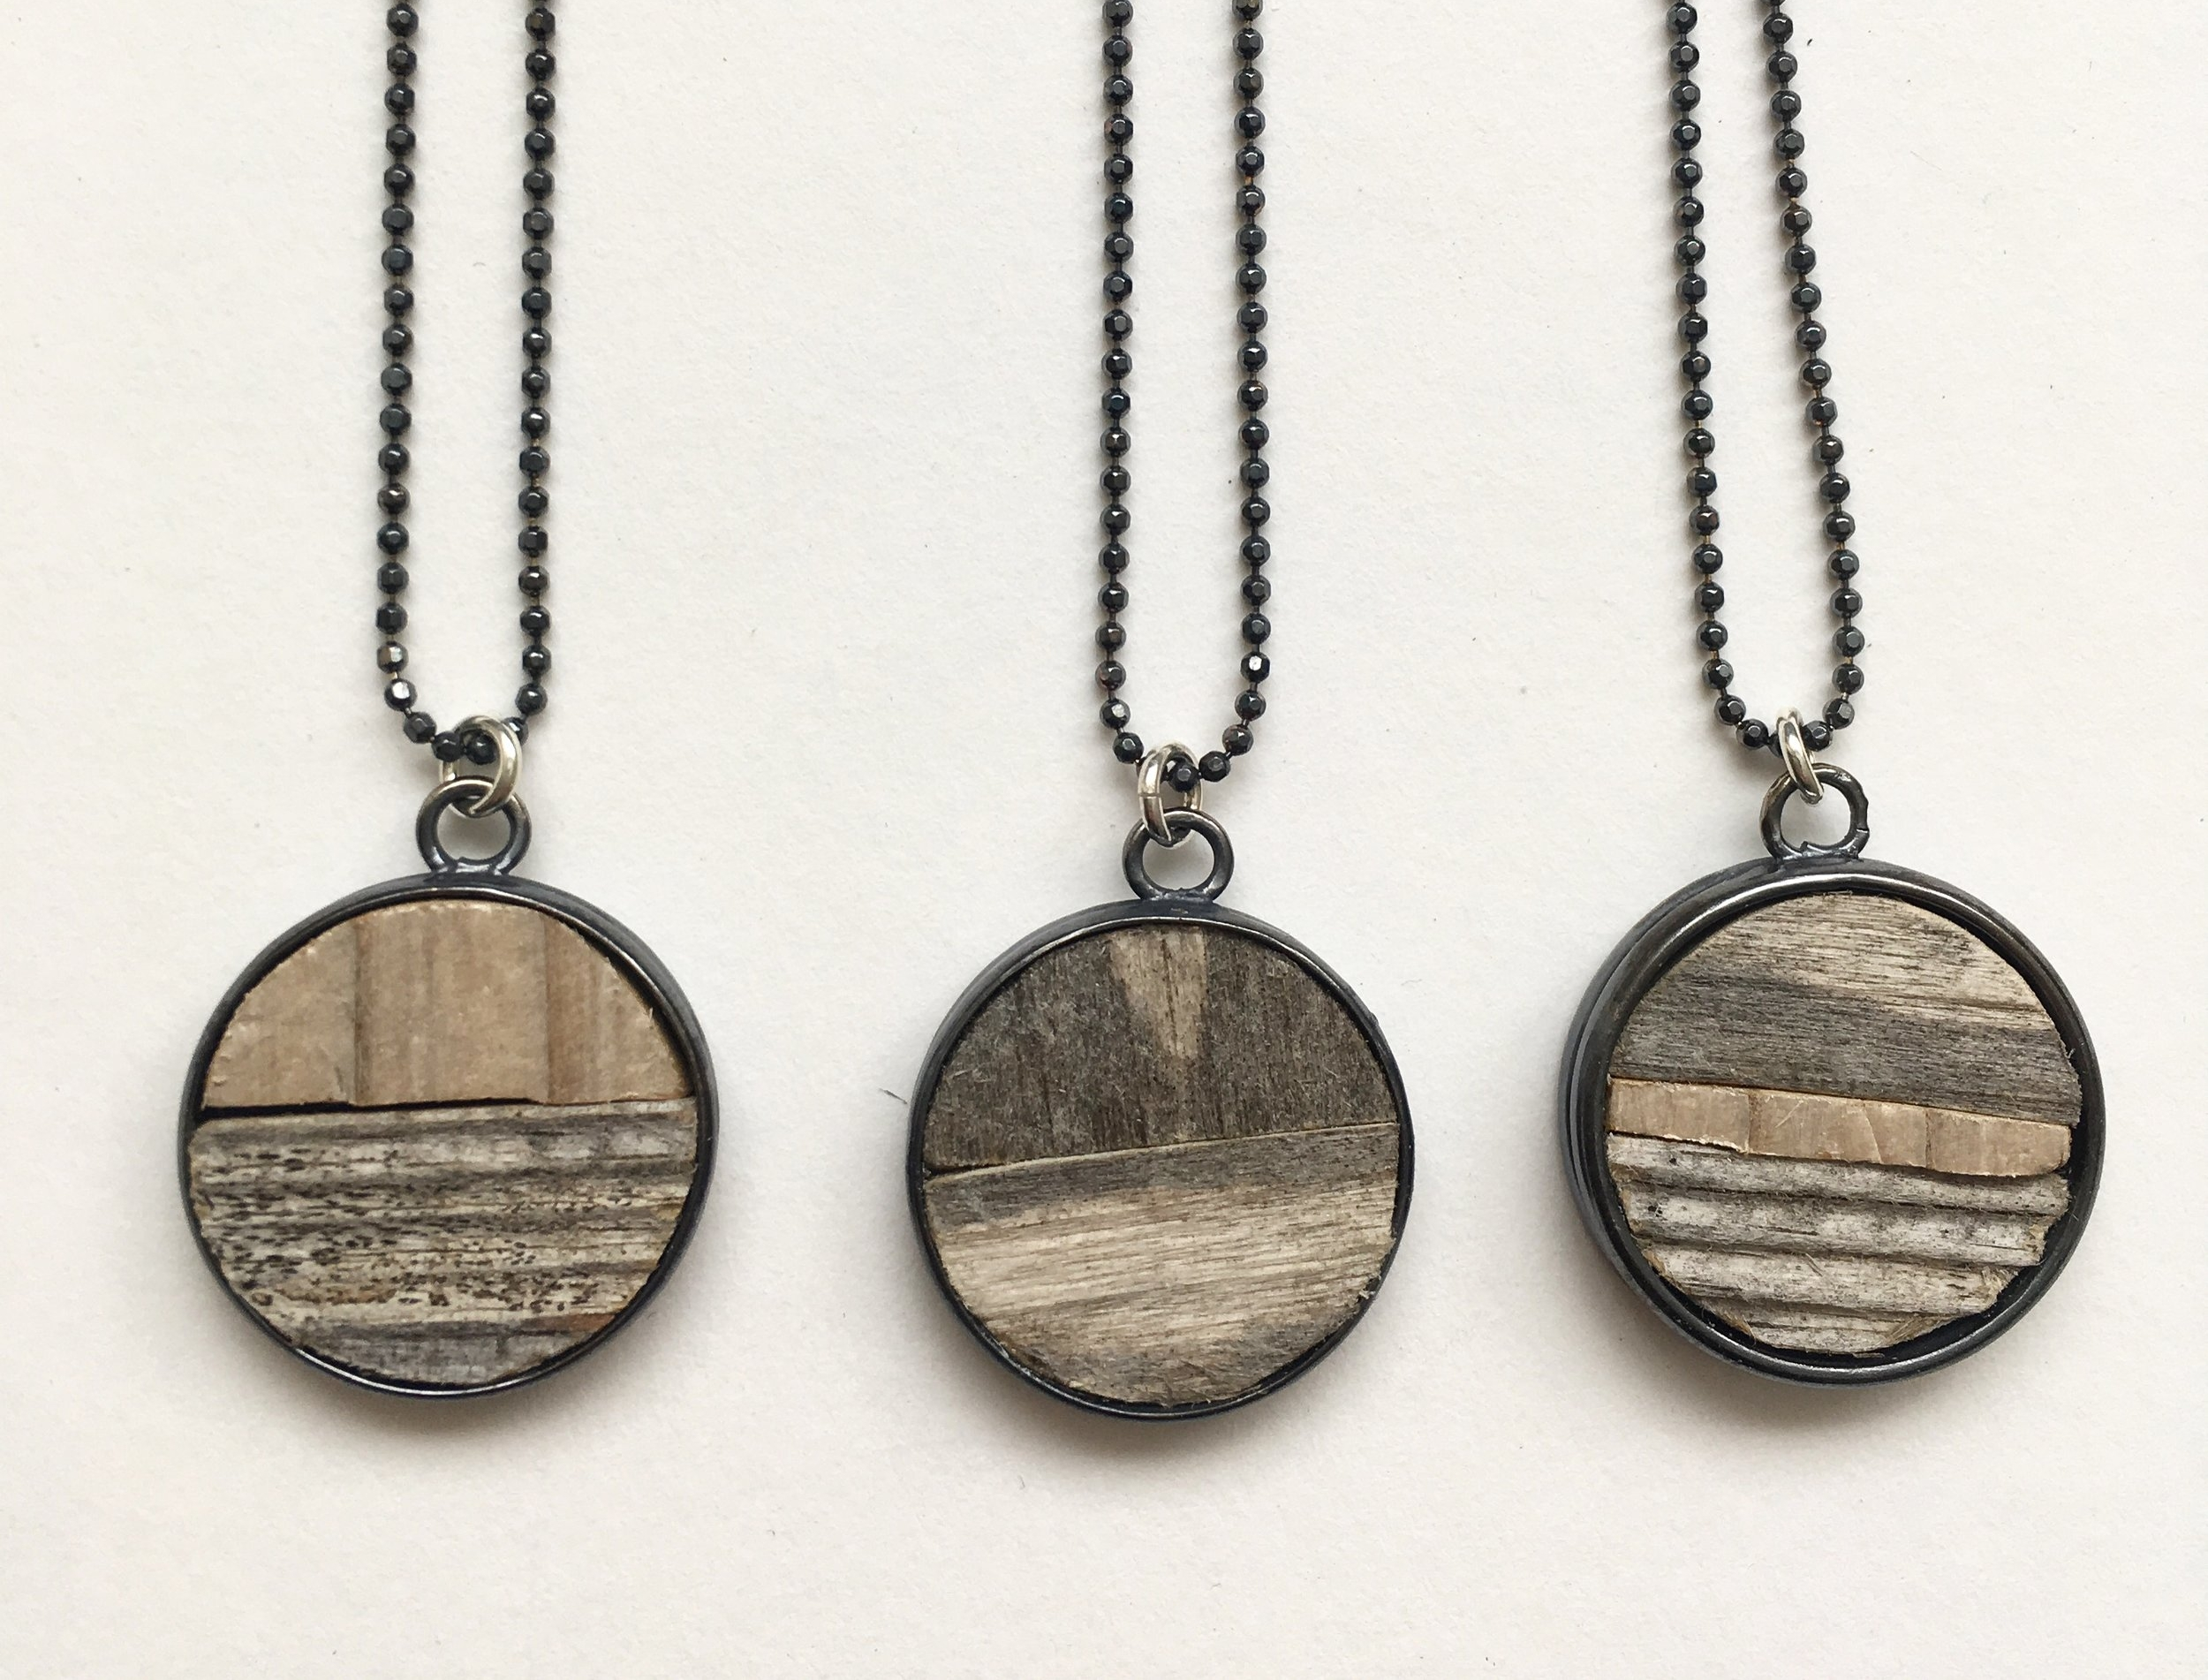 Driftwood necklace, sterling silver and driftwood. 2018